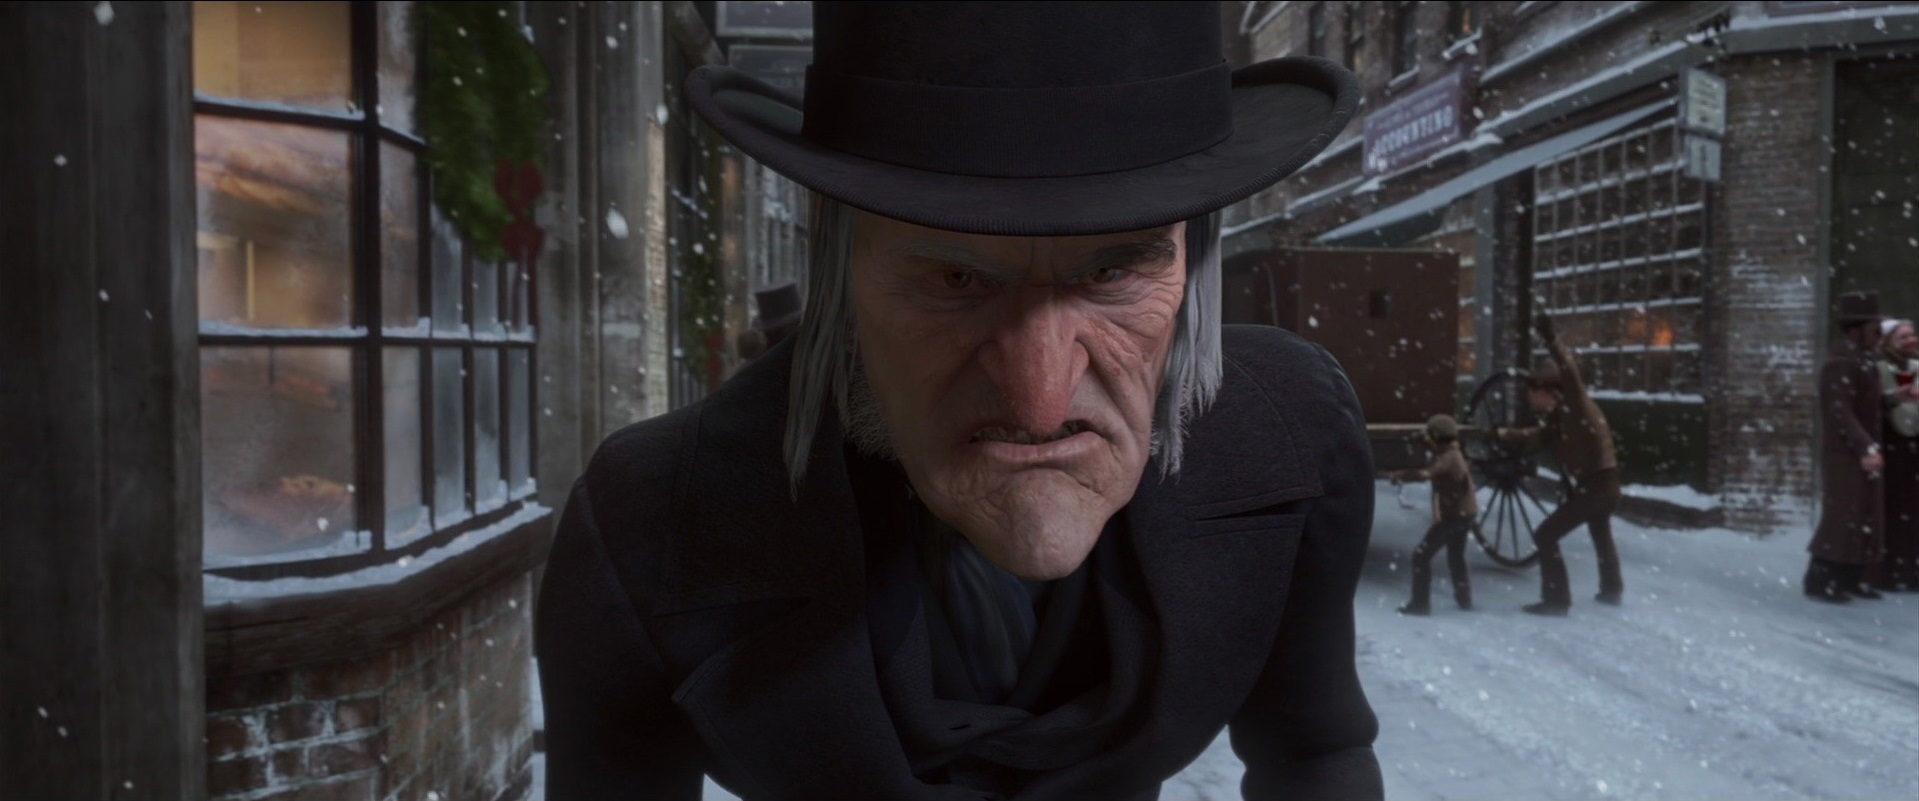 Christmas Carol Scrooge.Ebenezer Scrooge Disney Wiki Fandom Powered By Wikia